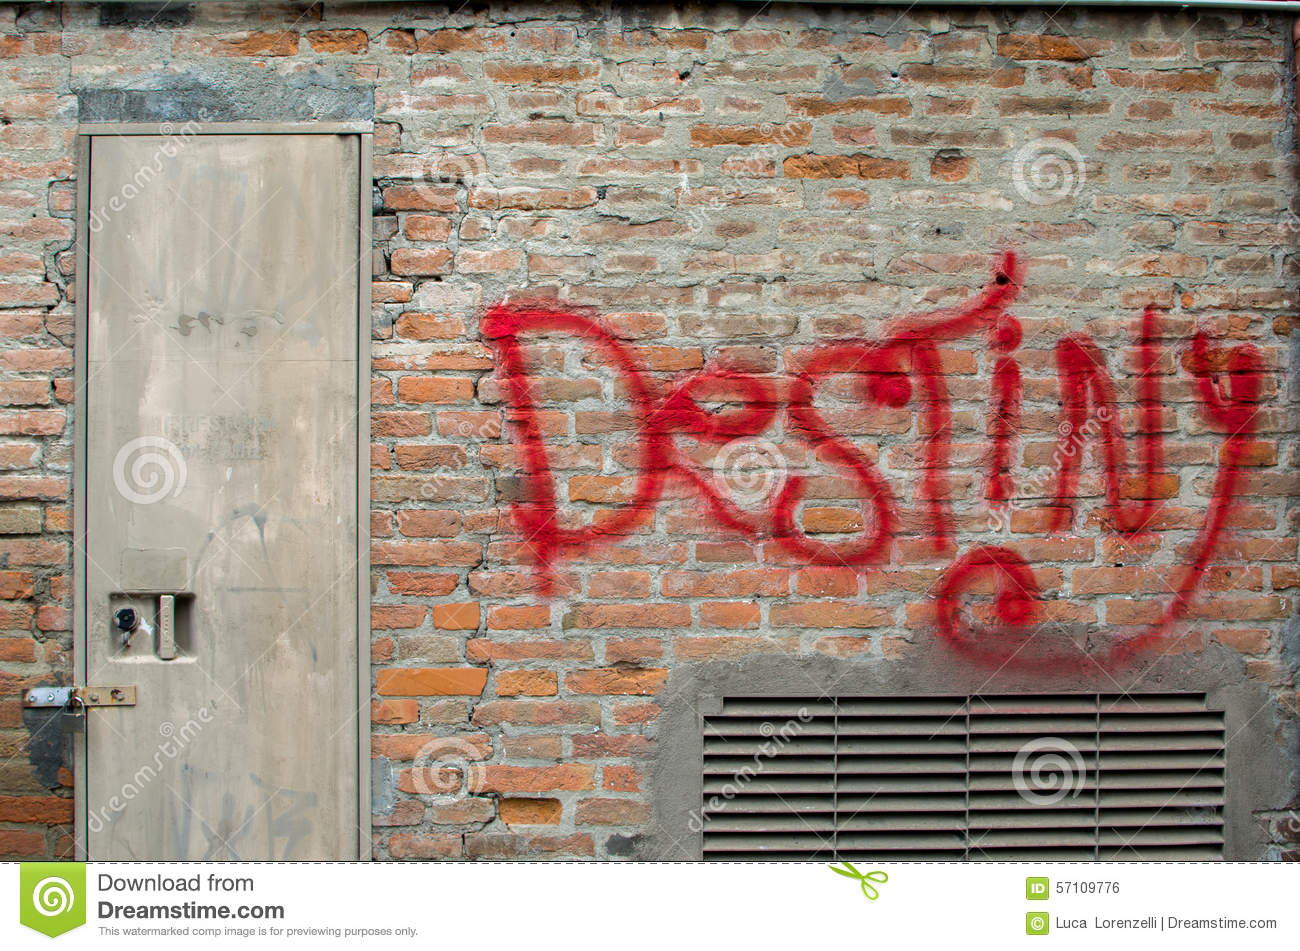 Destiny graffiti on brick wall